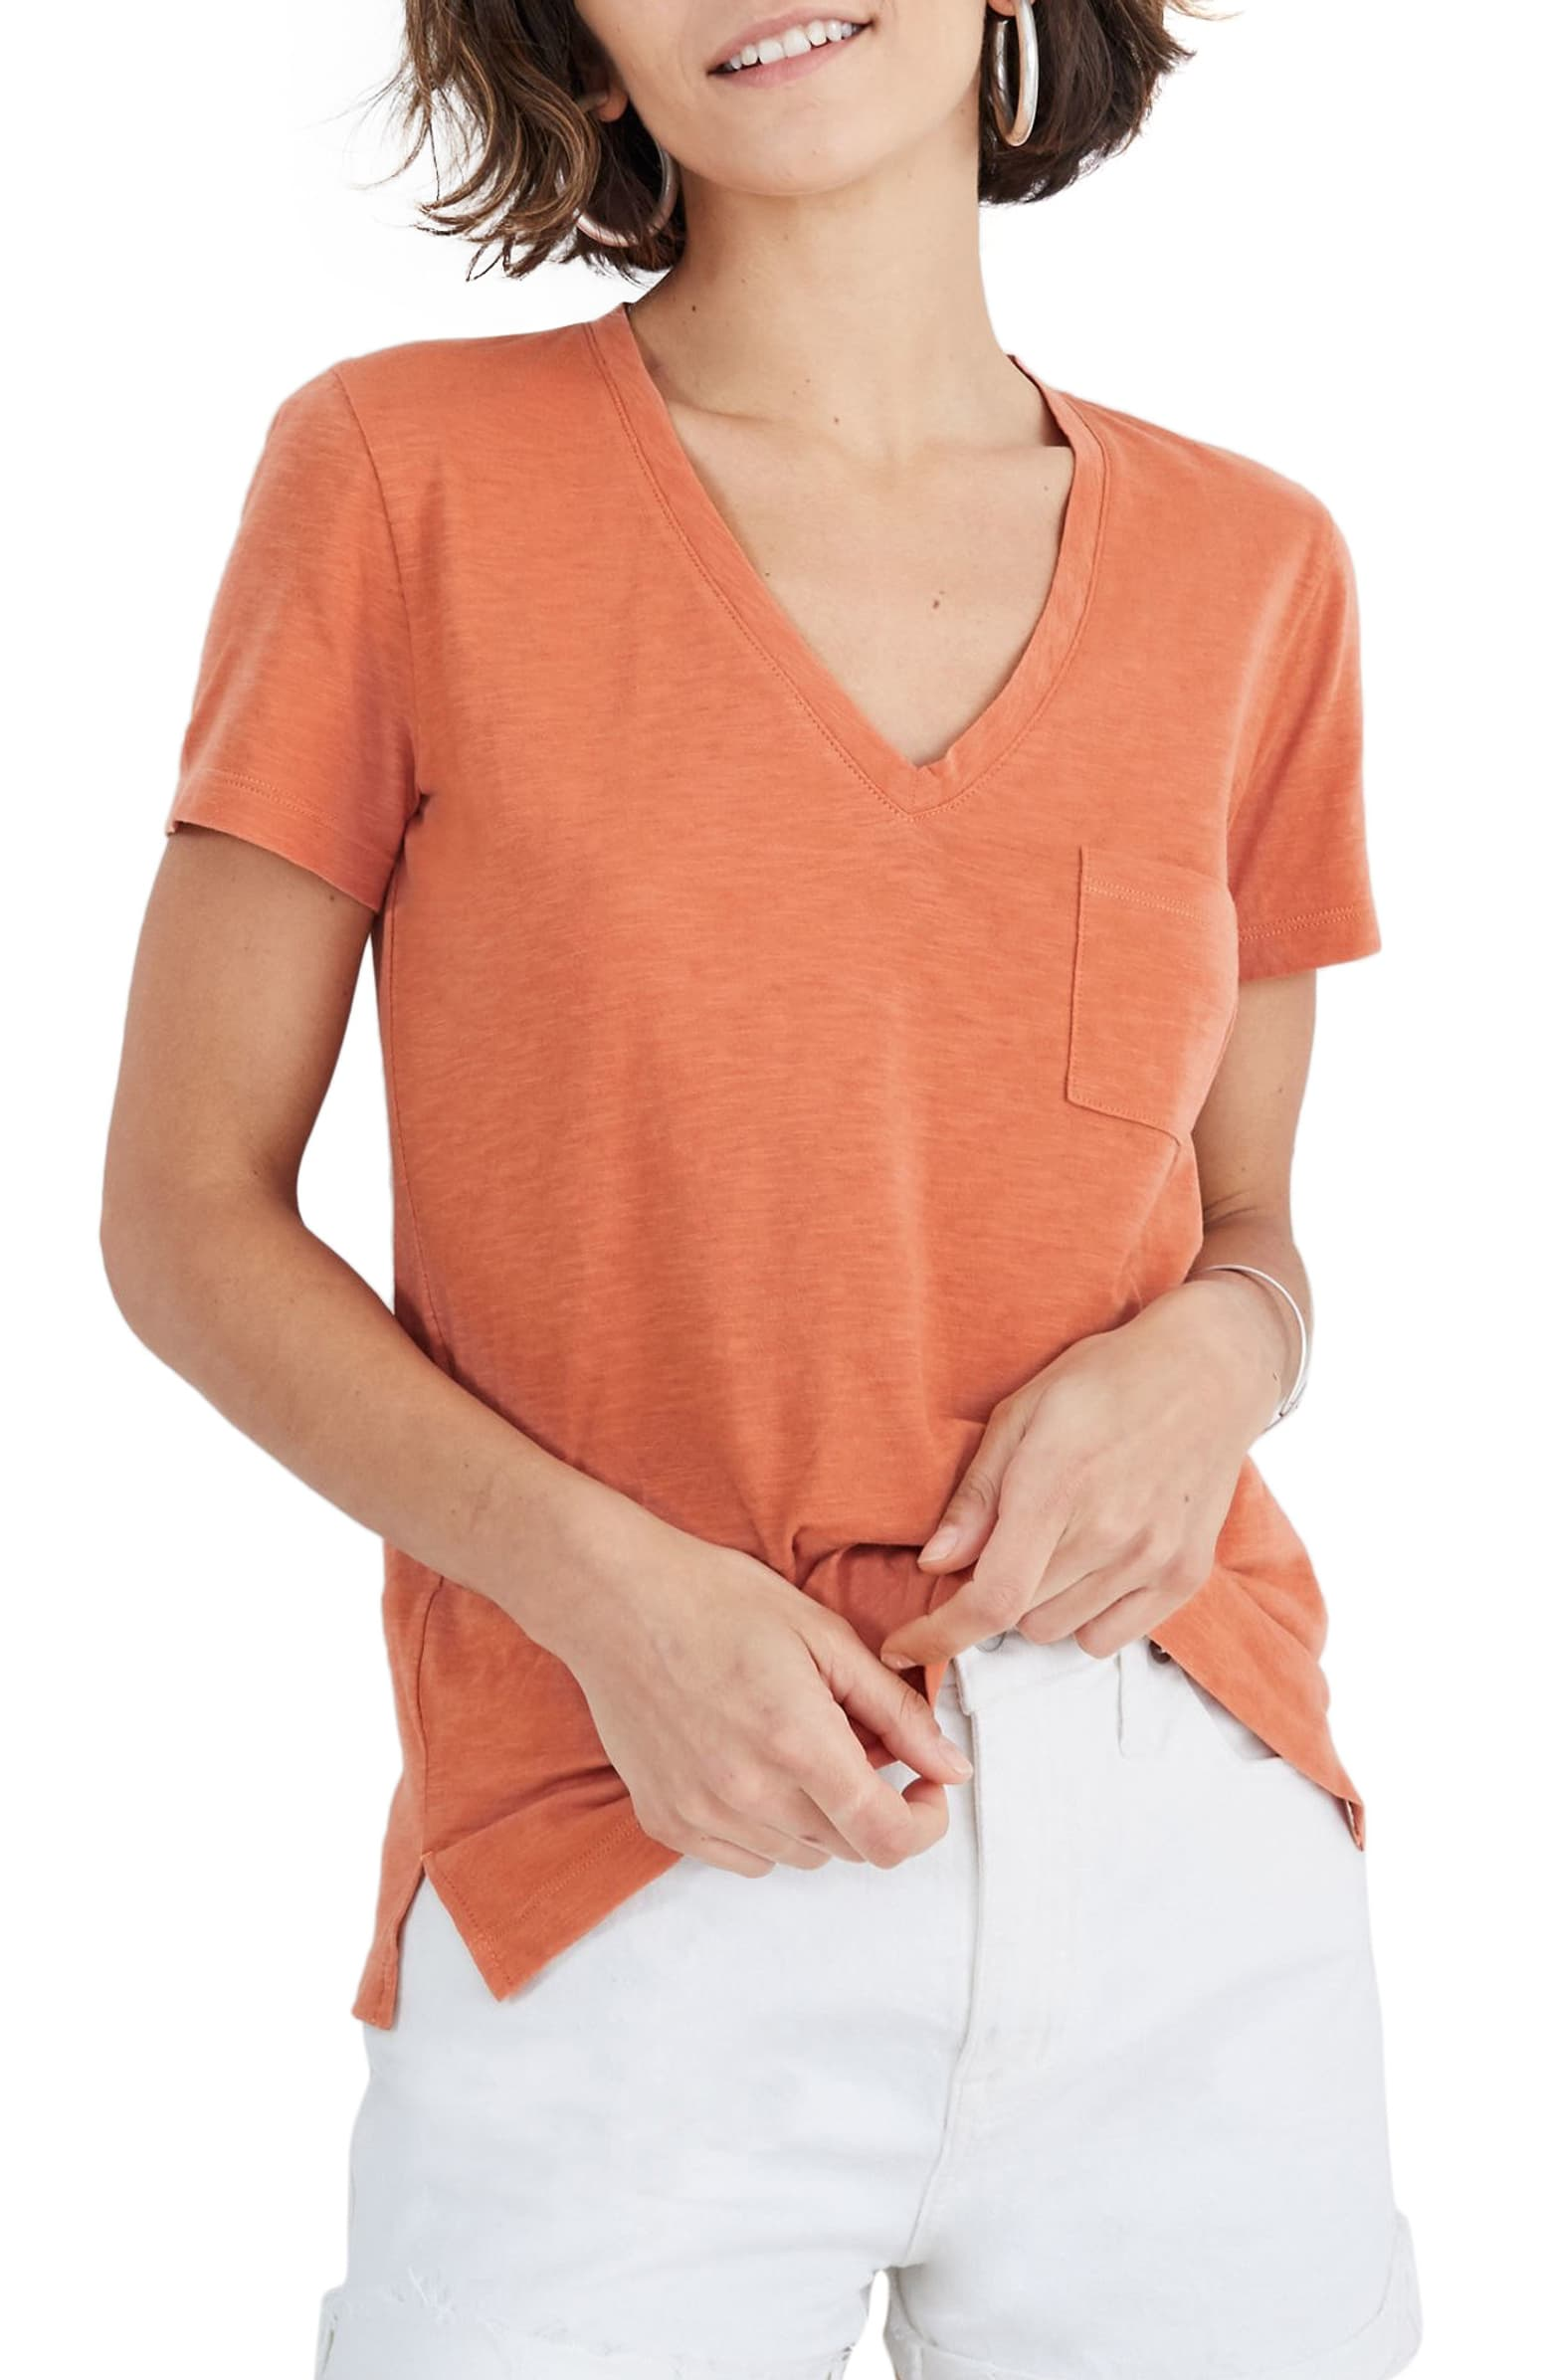 Simple tee, but good quality and very soft!